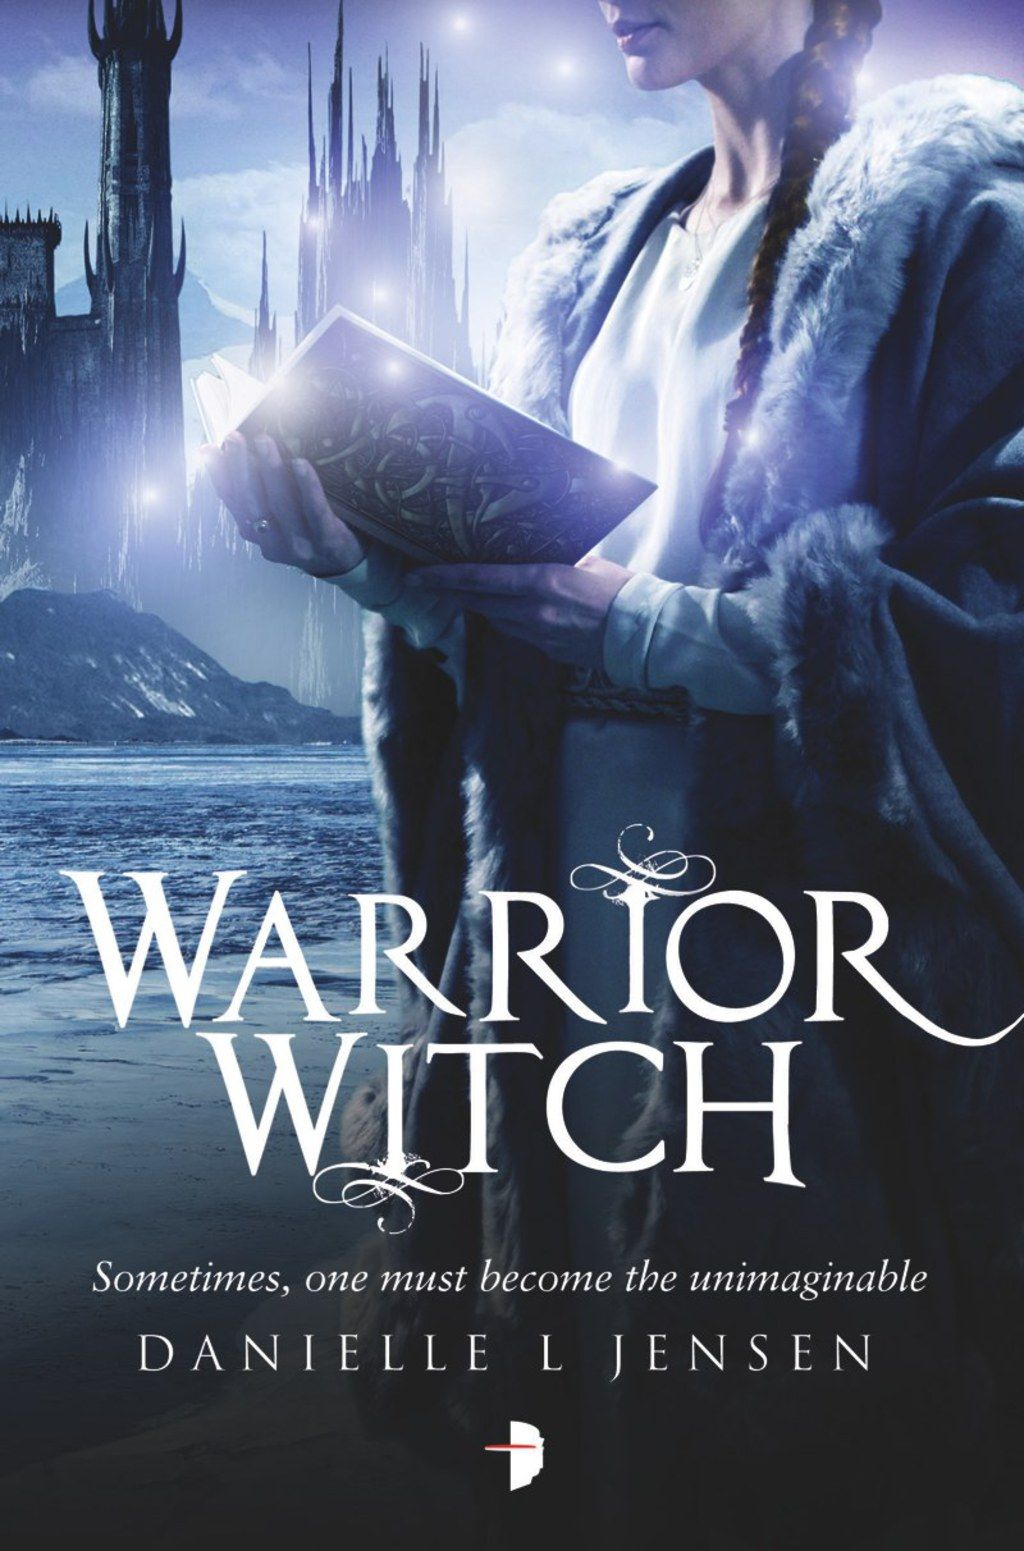 Warrior Witch (eBook) is part of Books - By Danielle L  Jensen PRINT ISBN 9780857664693 ETEXT ISBN 9780857664709 Edition 0